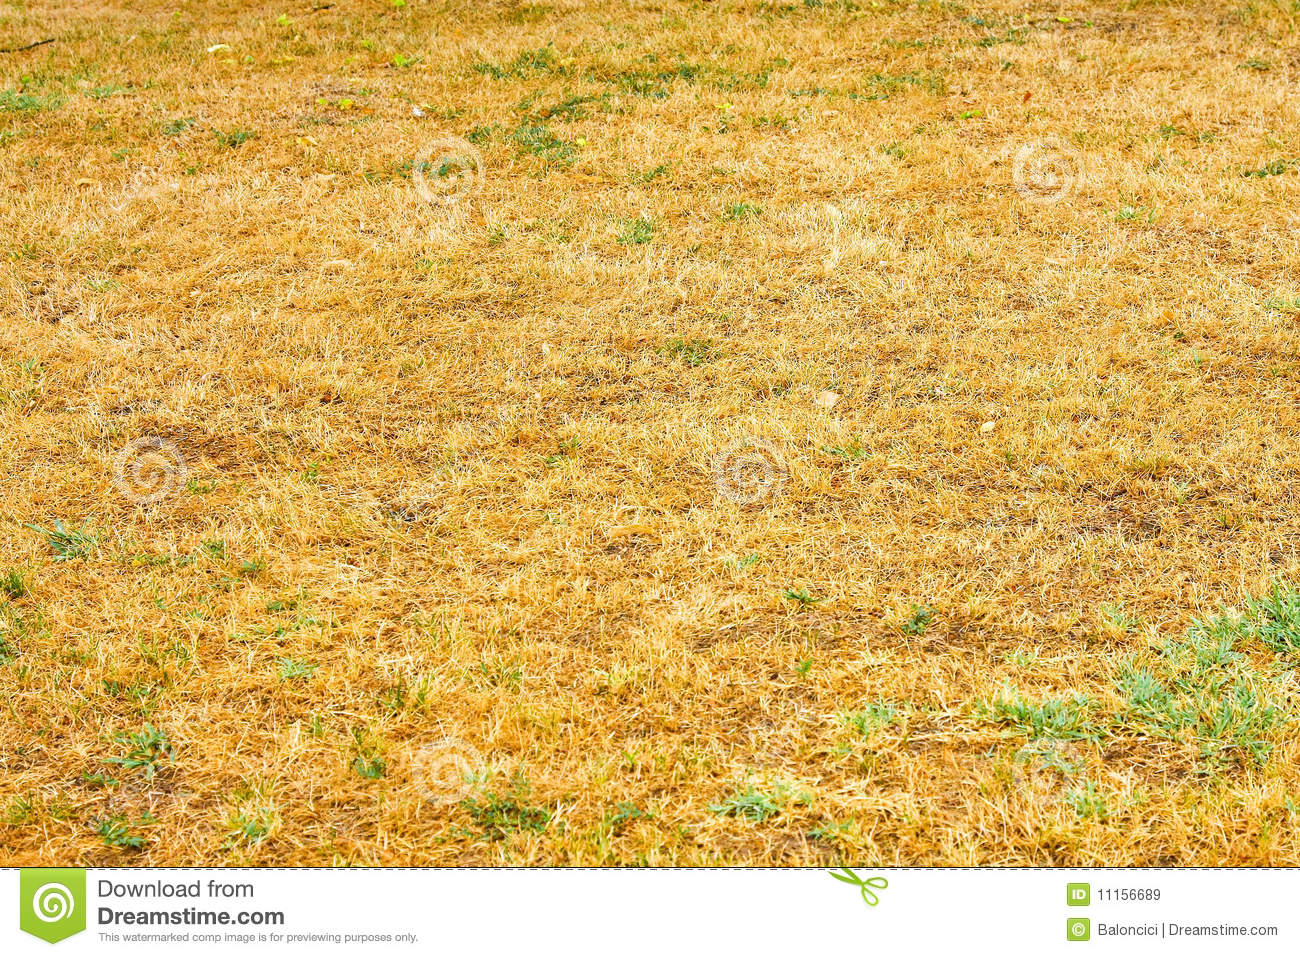 Savanna Drought Royalty Free Stock Images - Image: 11156689